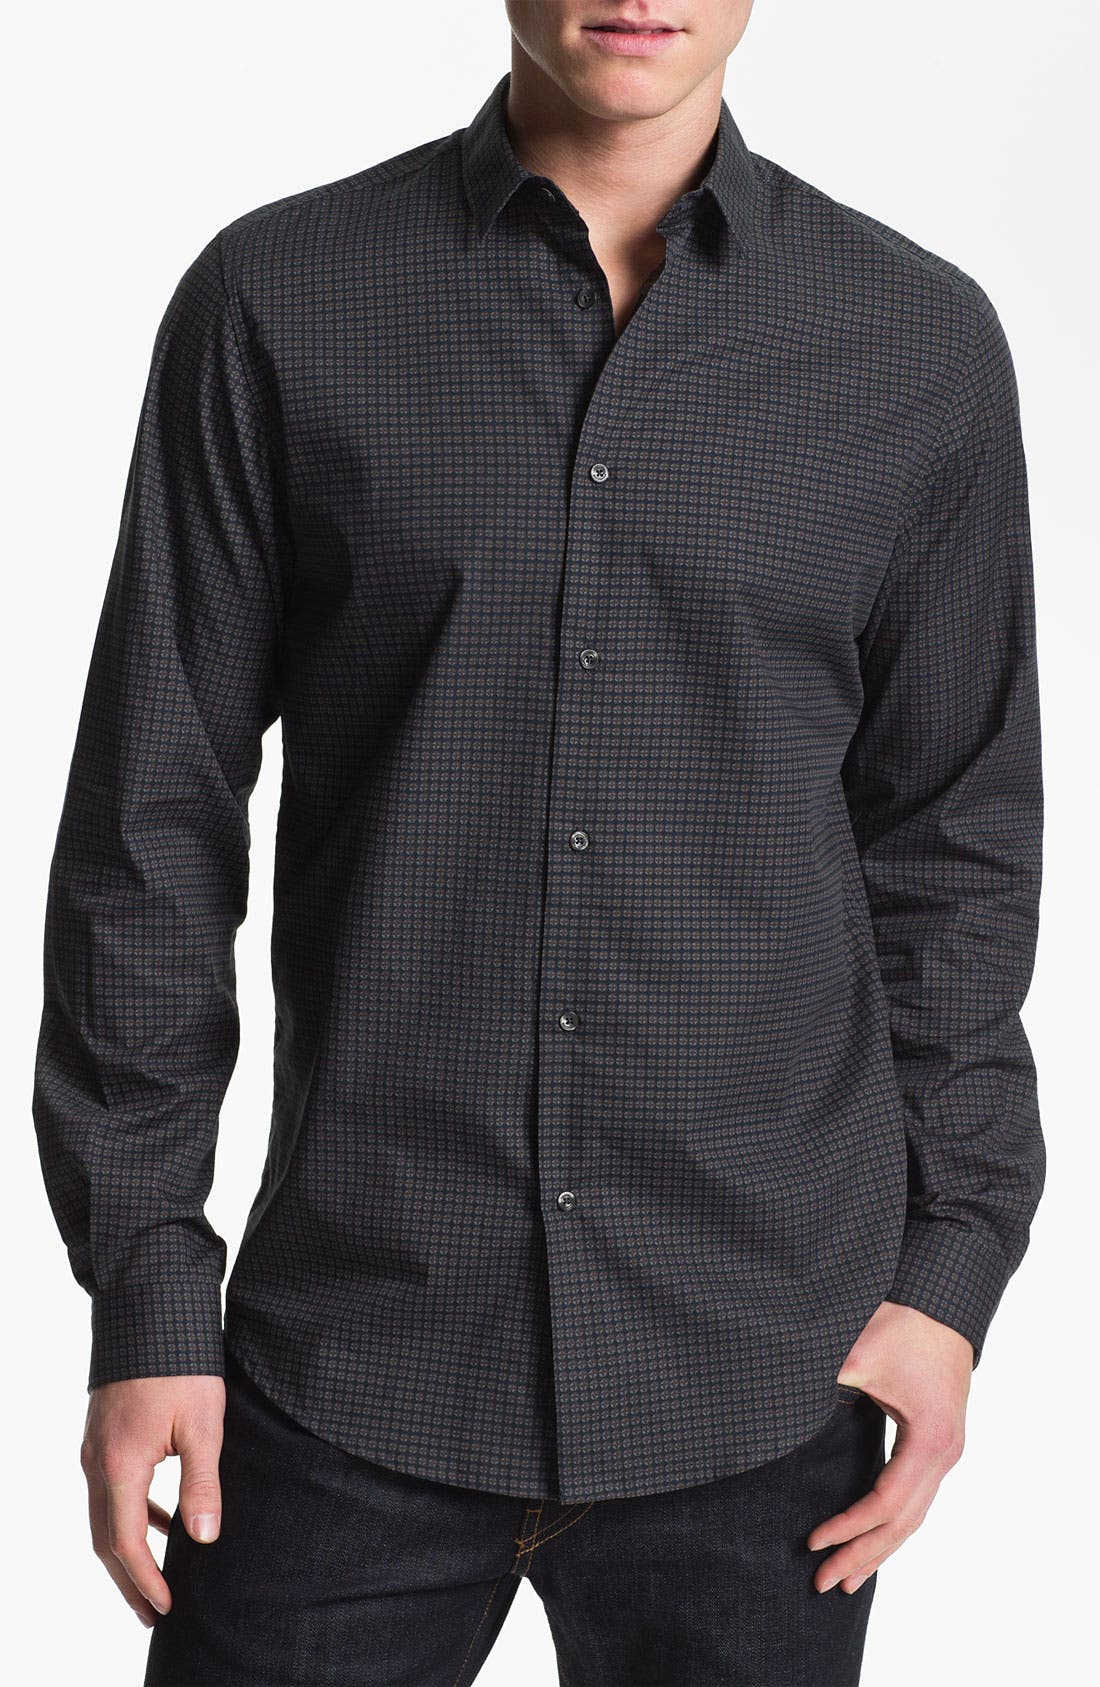 Main Image - Ben Sherman 'Kensington' Woven Shirt